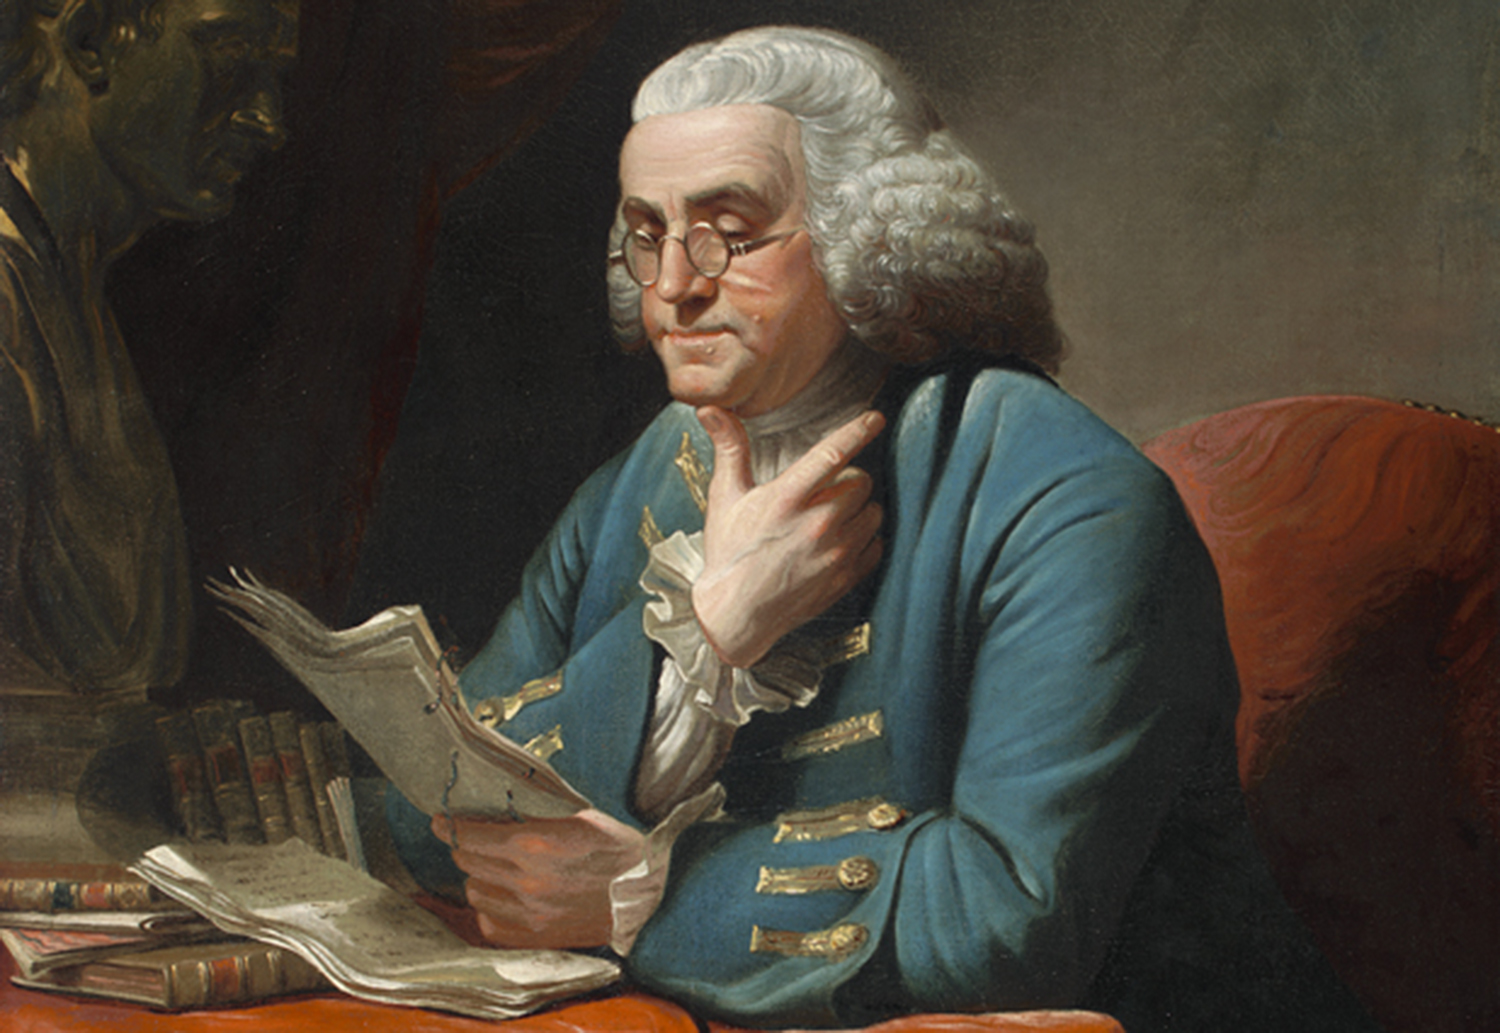 Painting of Benjamin Franklin by David Martin